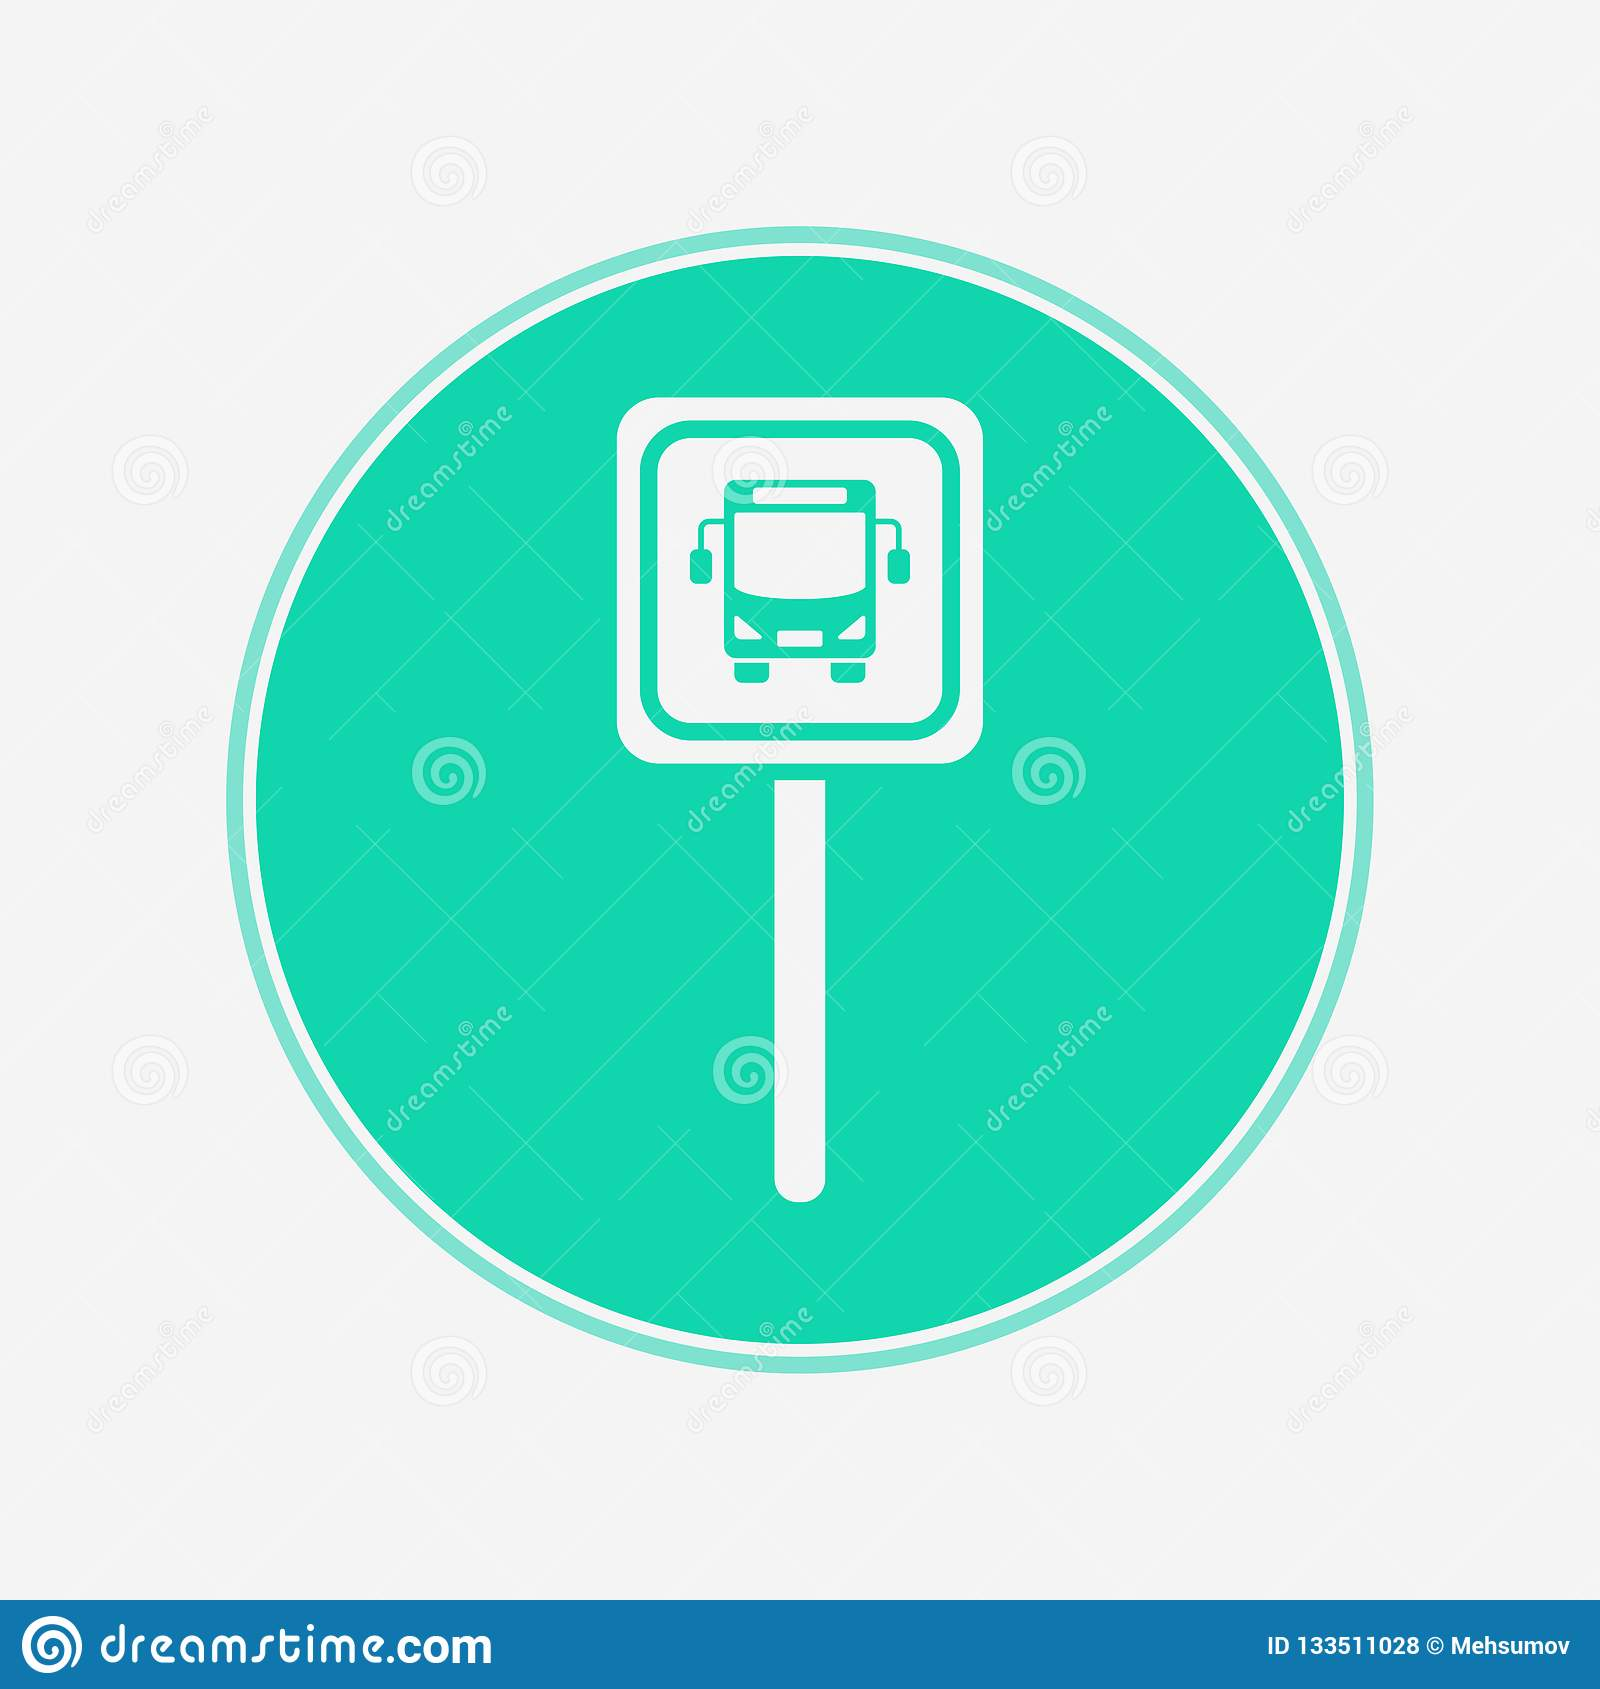 Bus Stop Vector Icon Sign Symbol Stock Vector Illustration Of Arrival Background 133511028